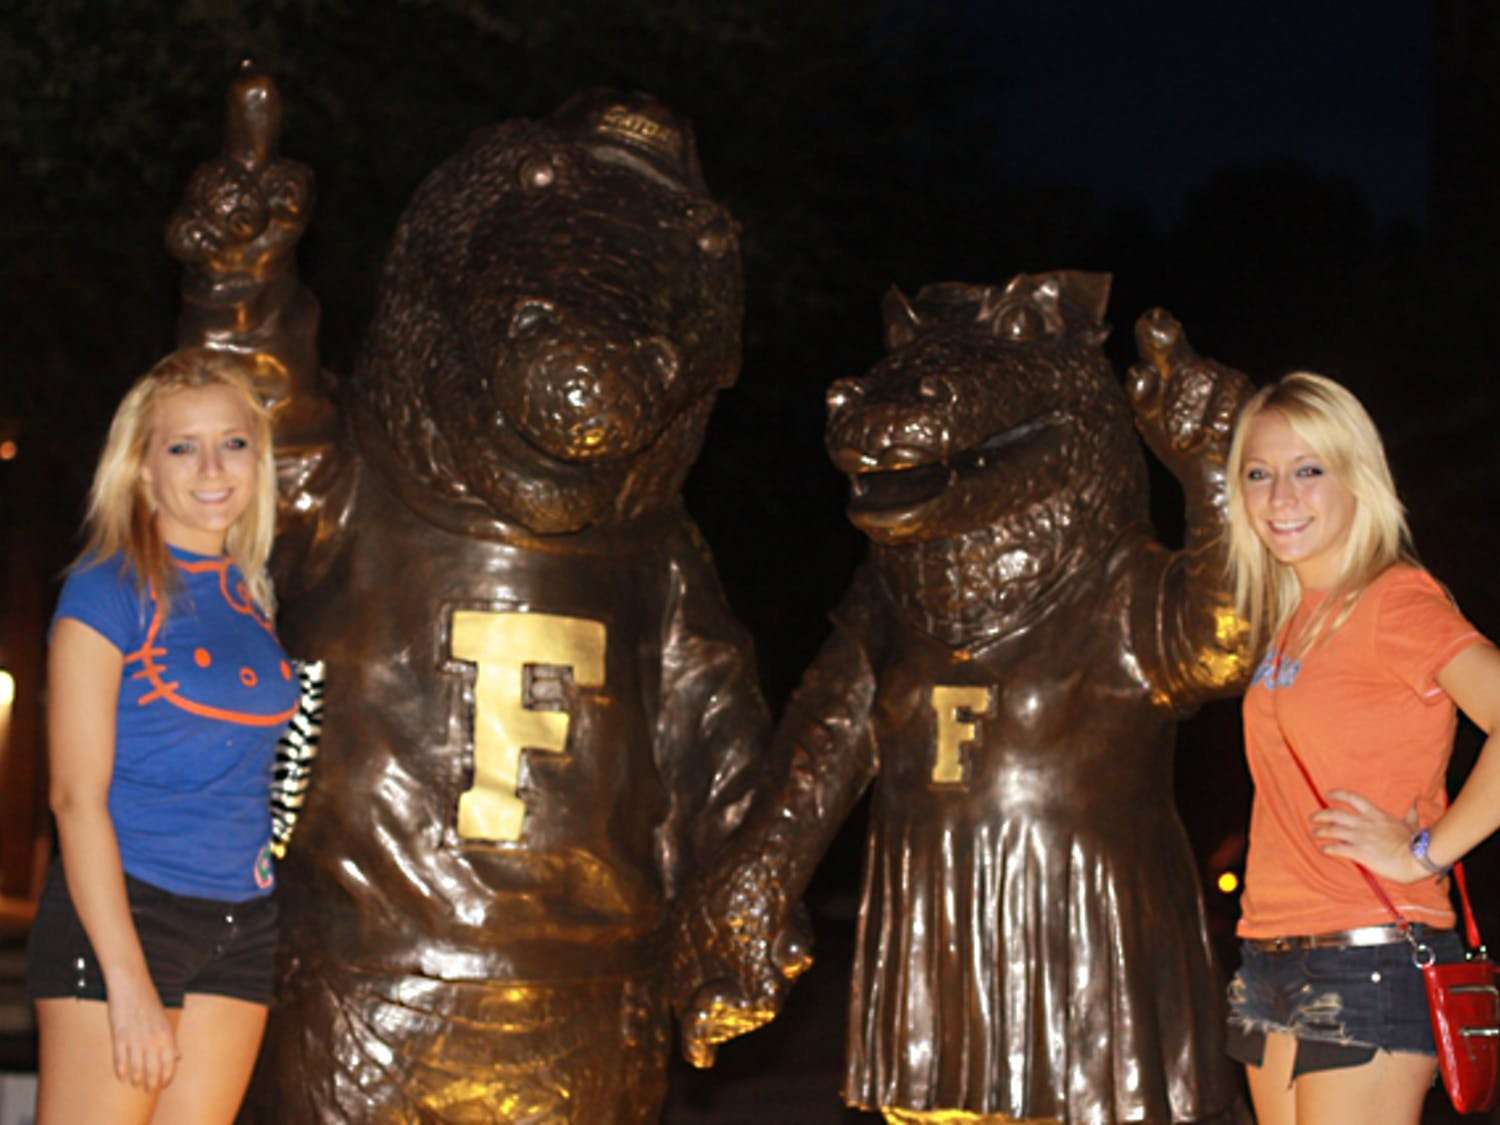 """Brittany and Erica Taltos pose for a photo in front of the Albert and Alberta statue on University Avenue. The twins, who are recognized for their appearance on season four of MTV's """"Jersey Shore,"""" are trying to auction a date with themselves on eBay."""